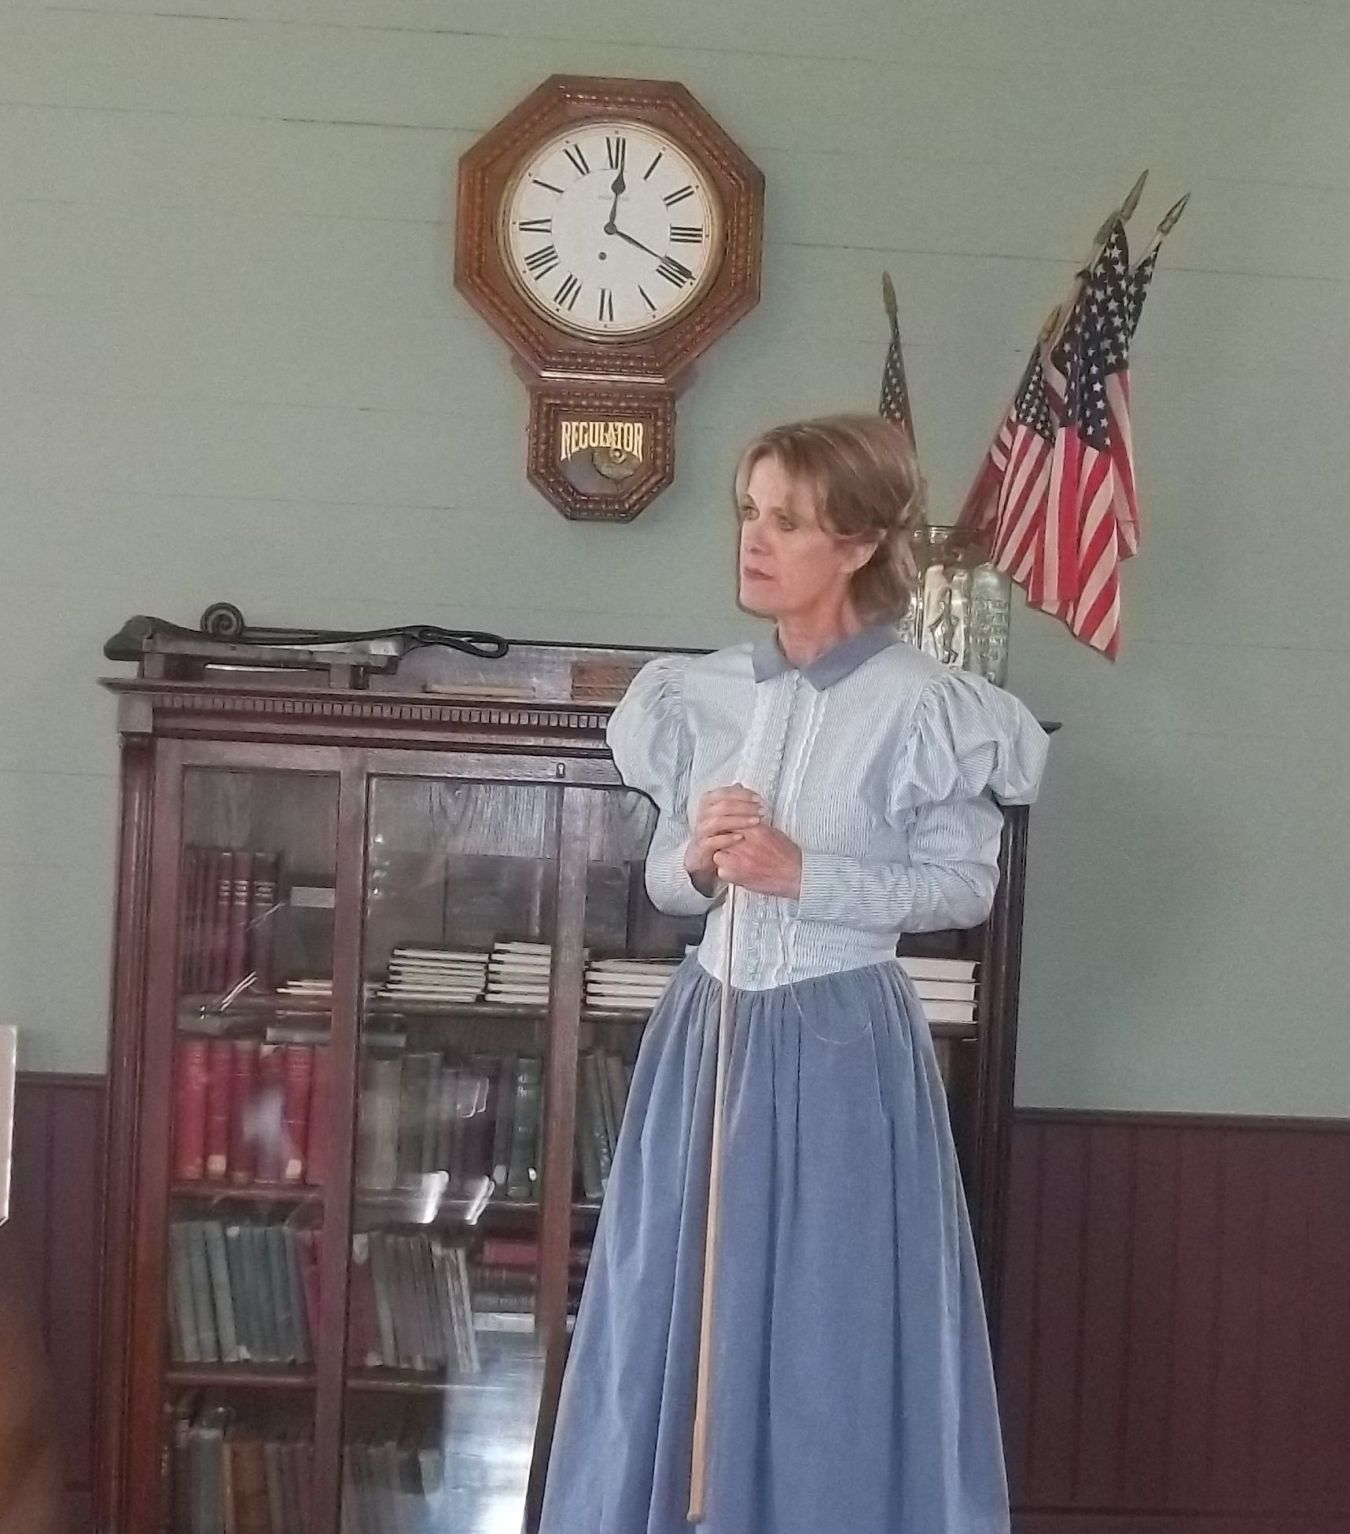 Tina McEnroe Conducts A Class At Pleasant Valley School In Buellton.